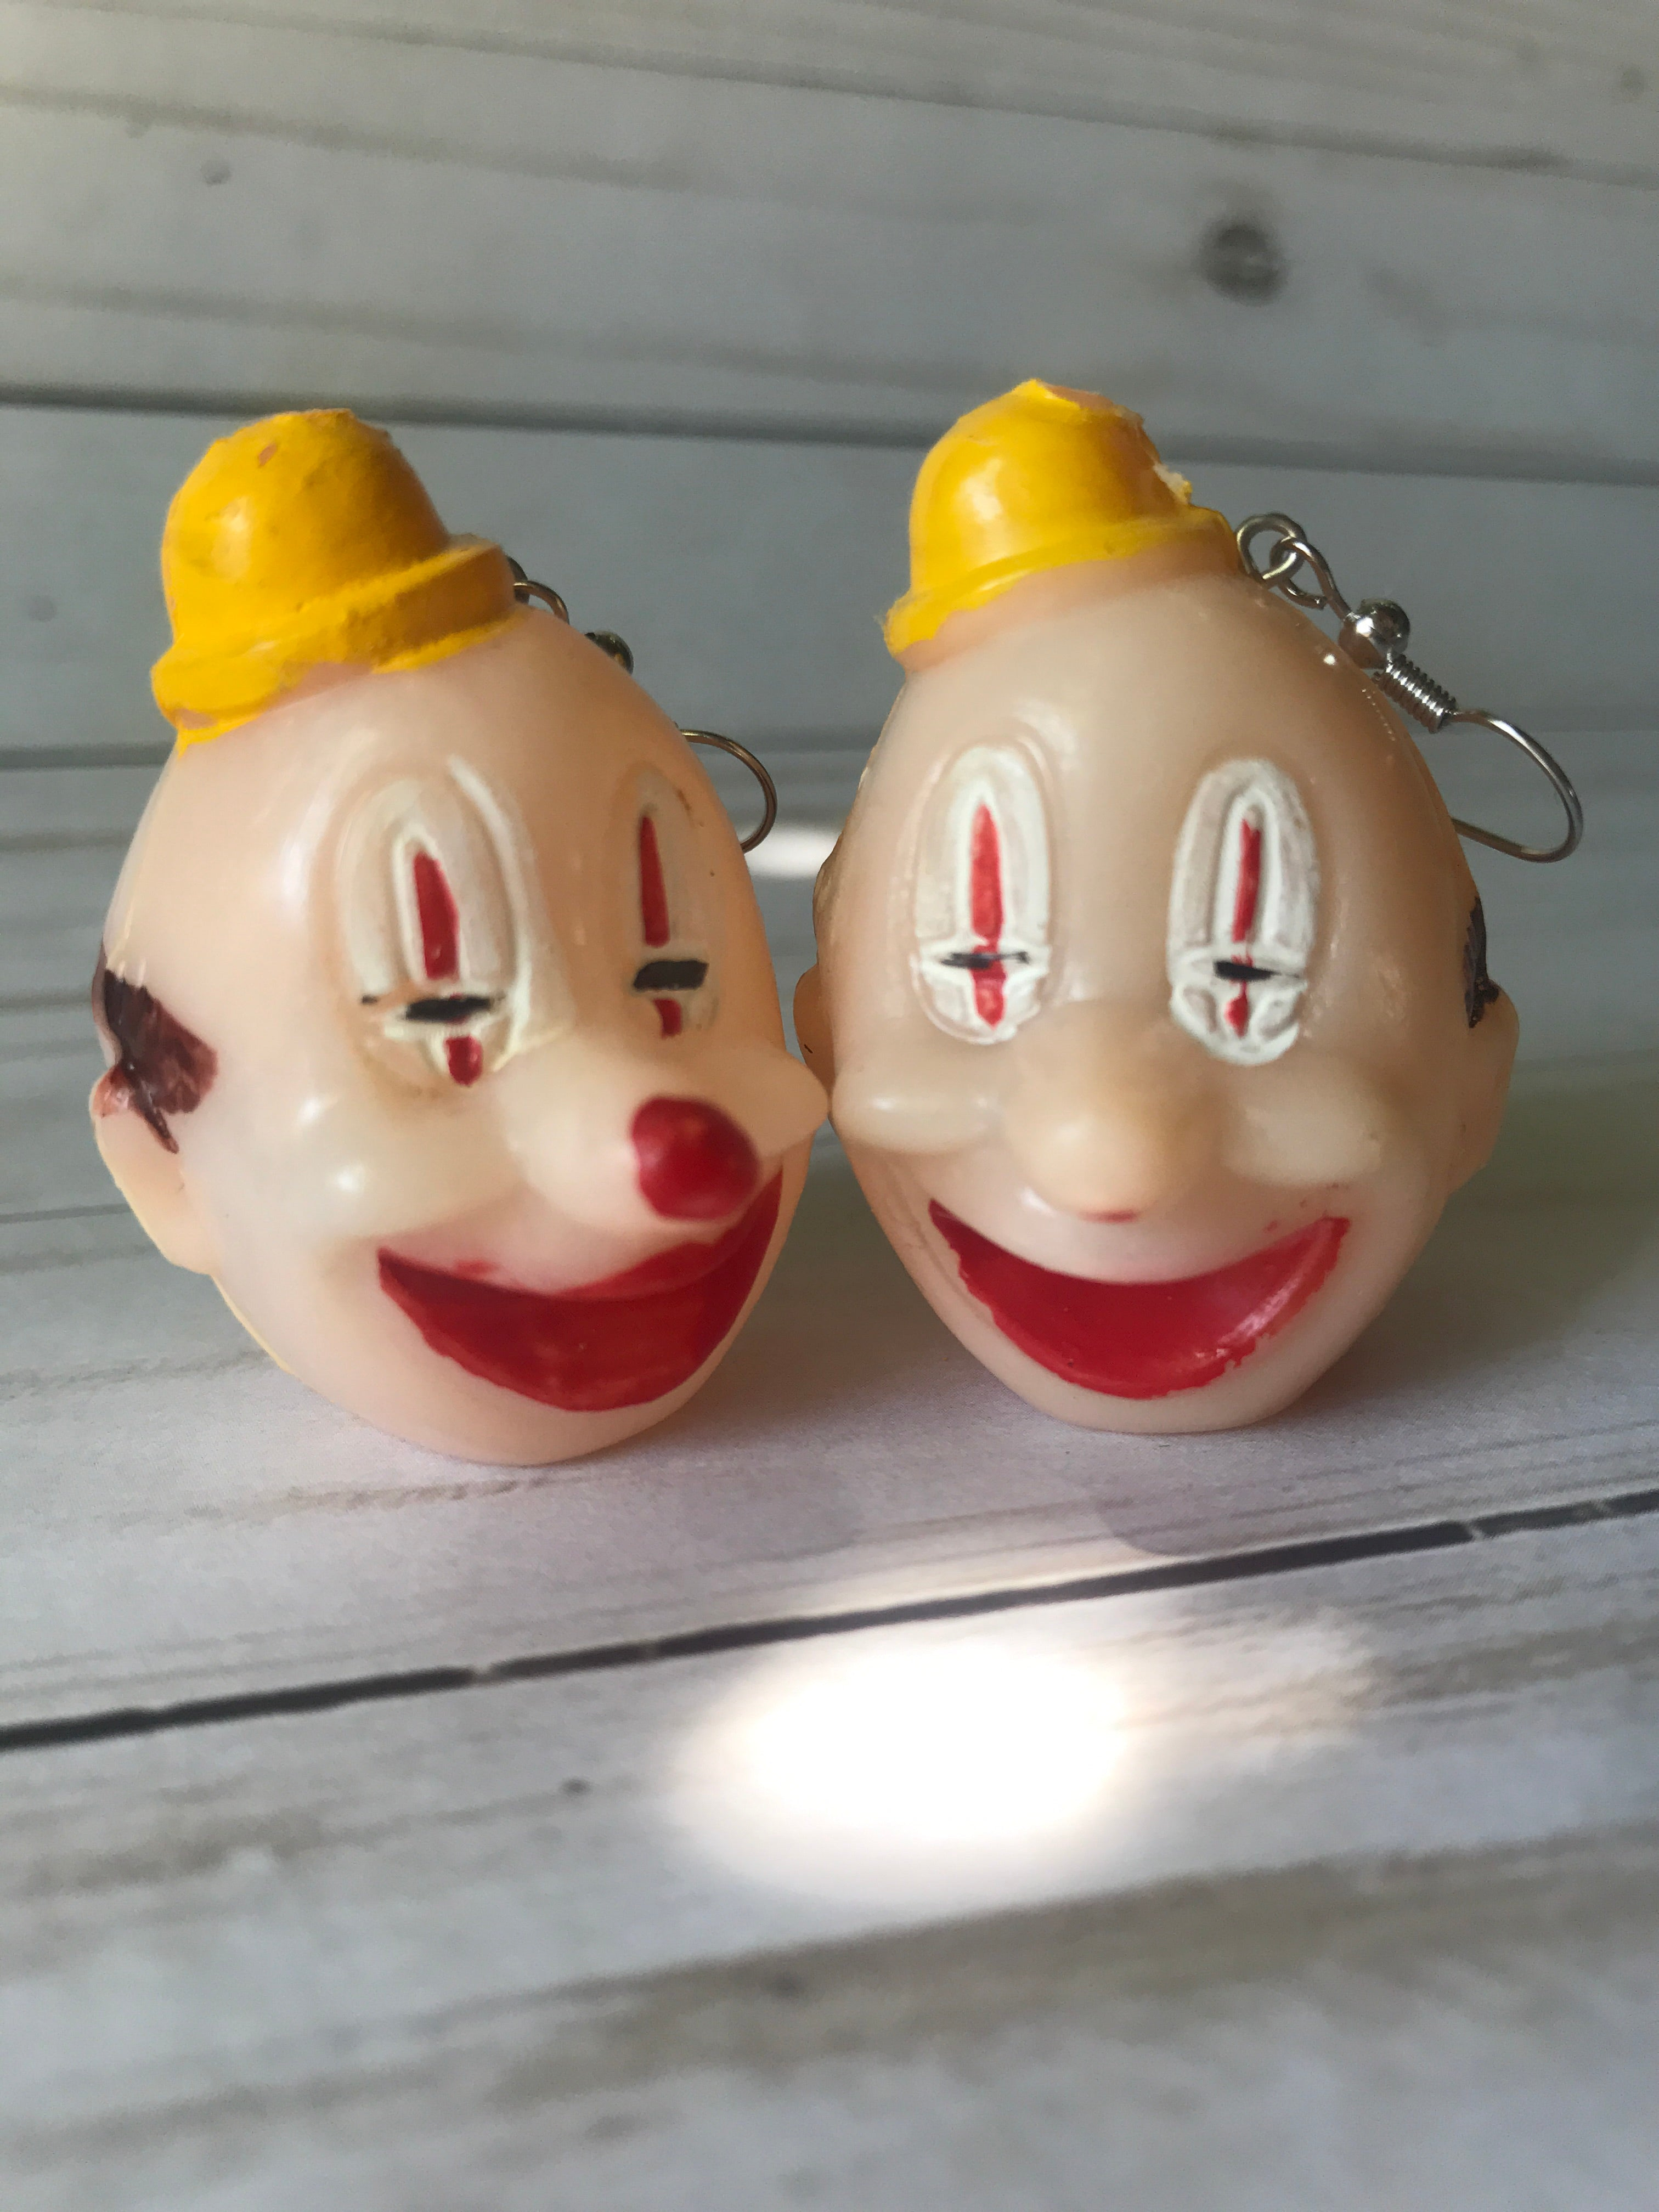 Giant Clown Heads